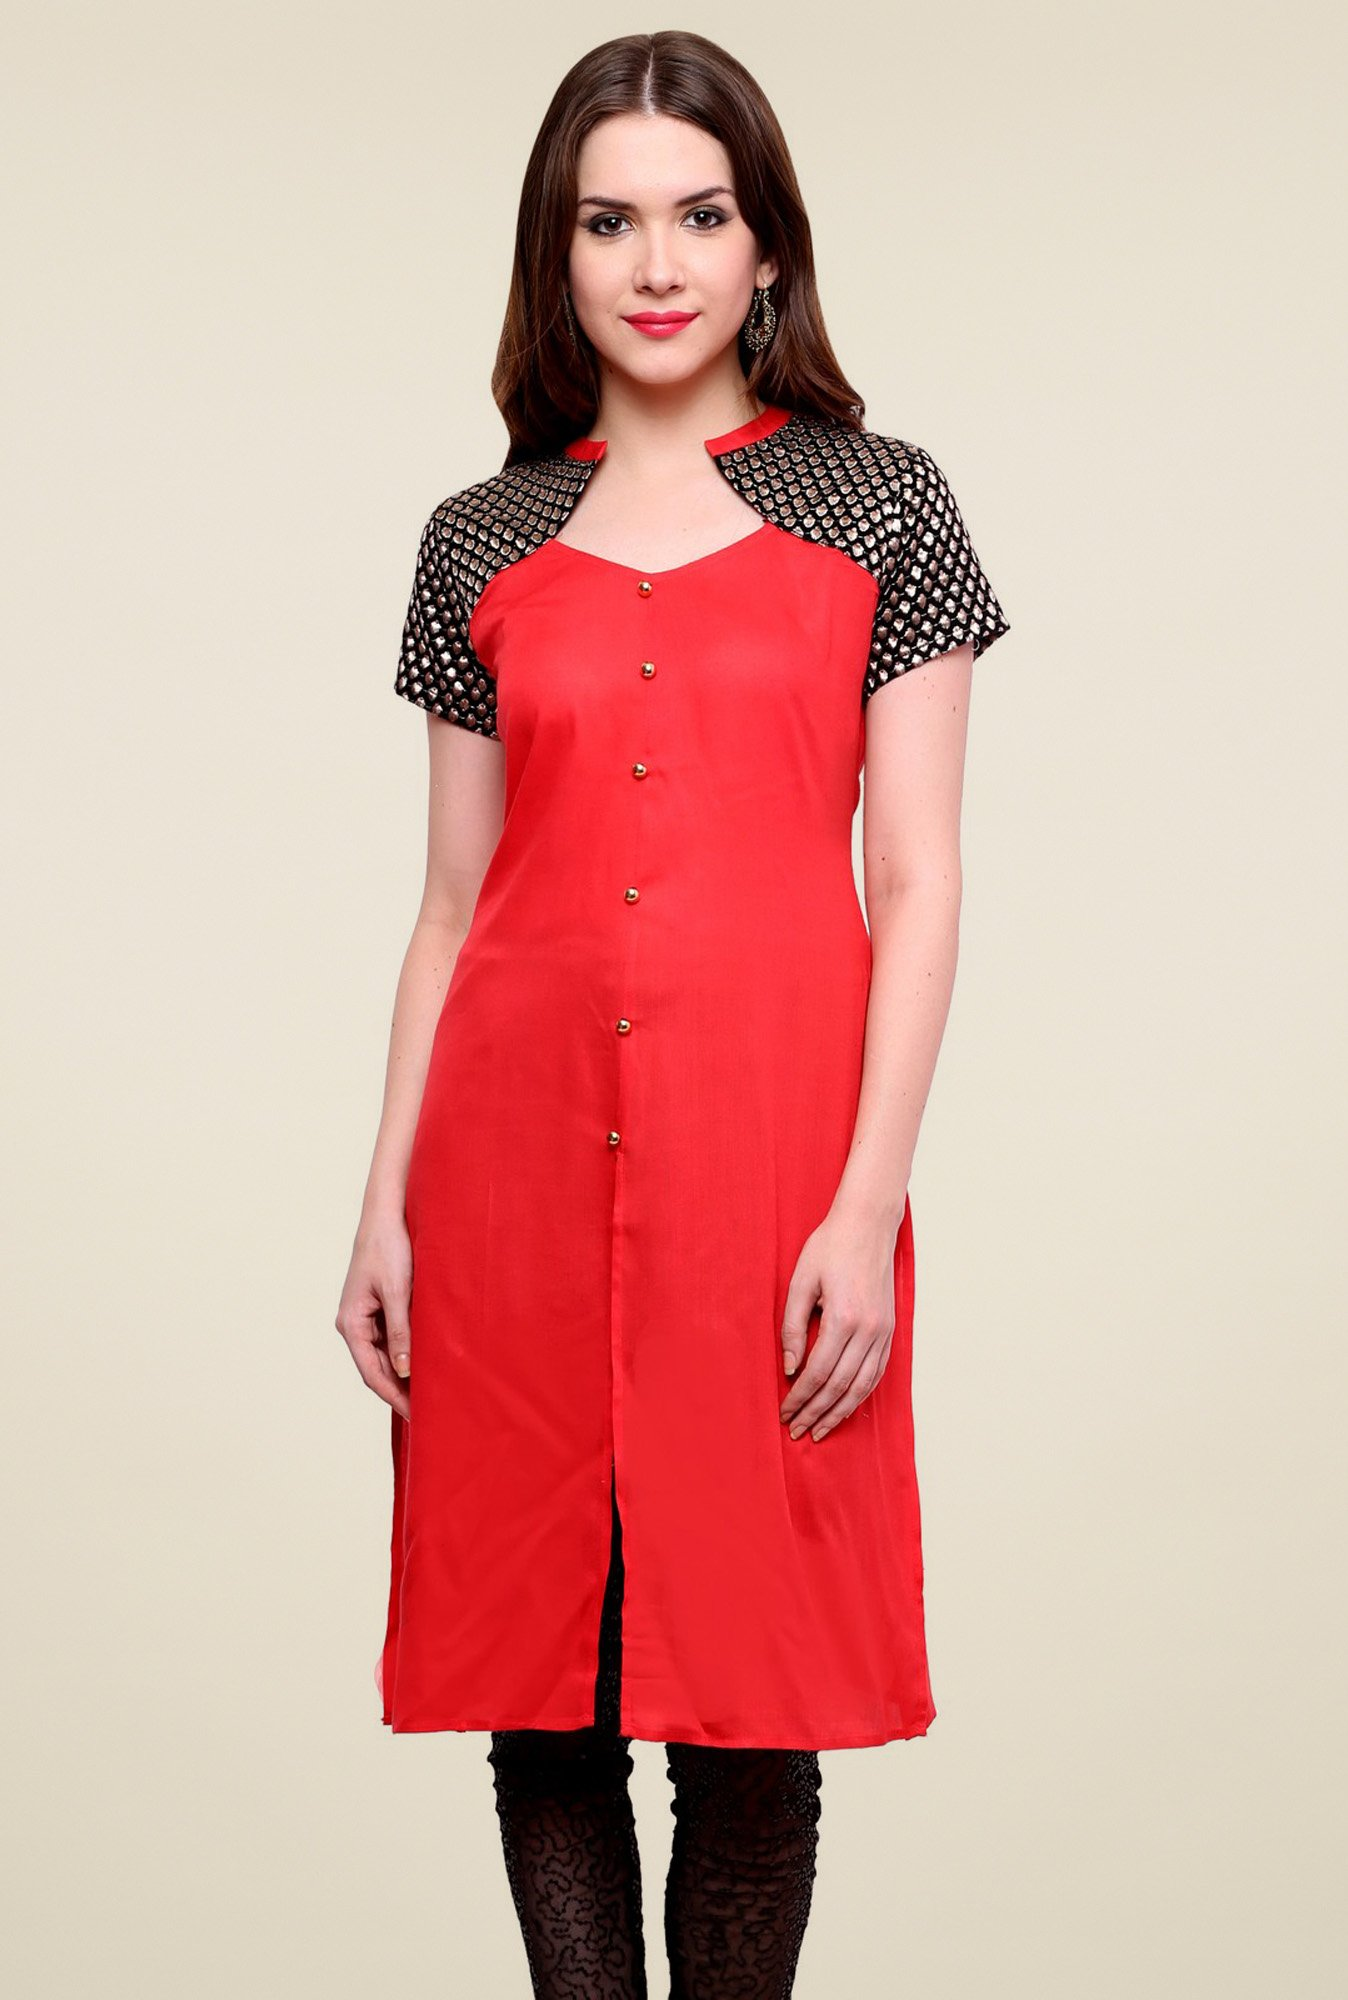 Pannkh Red V-Neck Regular Fit Kurti